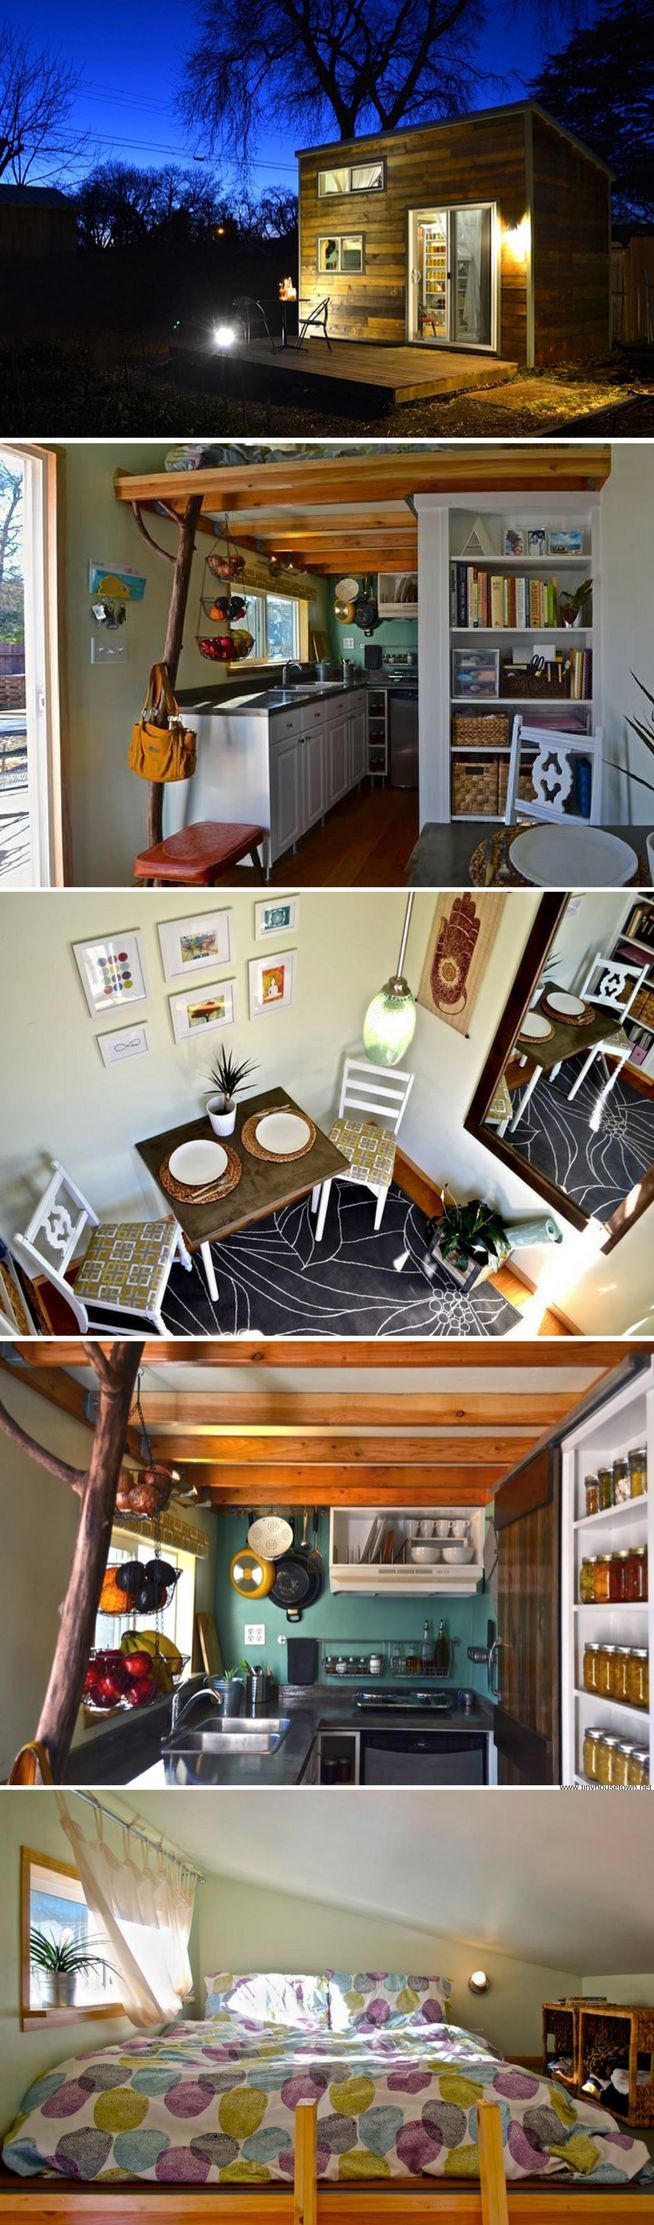 Tiny houses on wheels for sale california - A Handcrafted Tiny House Available For Sale In California That Spans Just 120 Sq Ft Modern Style Tiny Houses Pinterest Tiny Houses